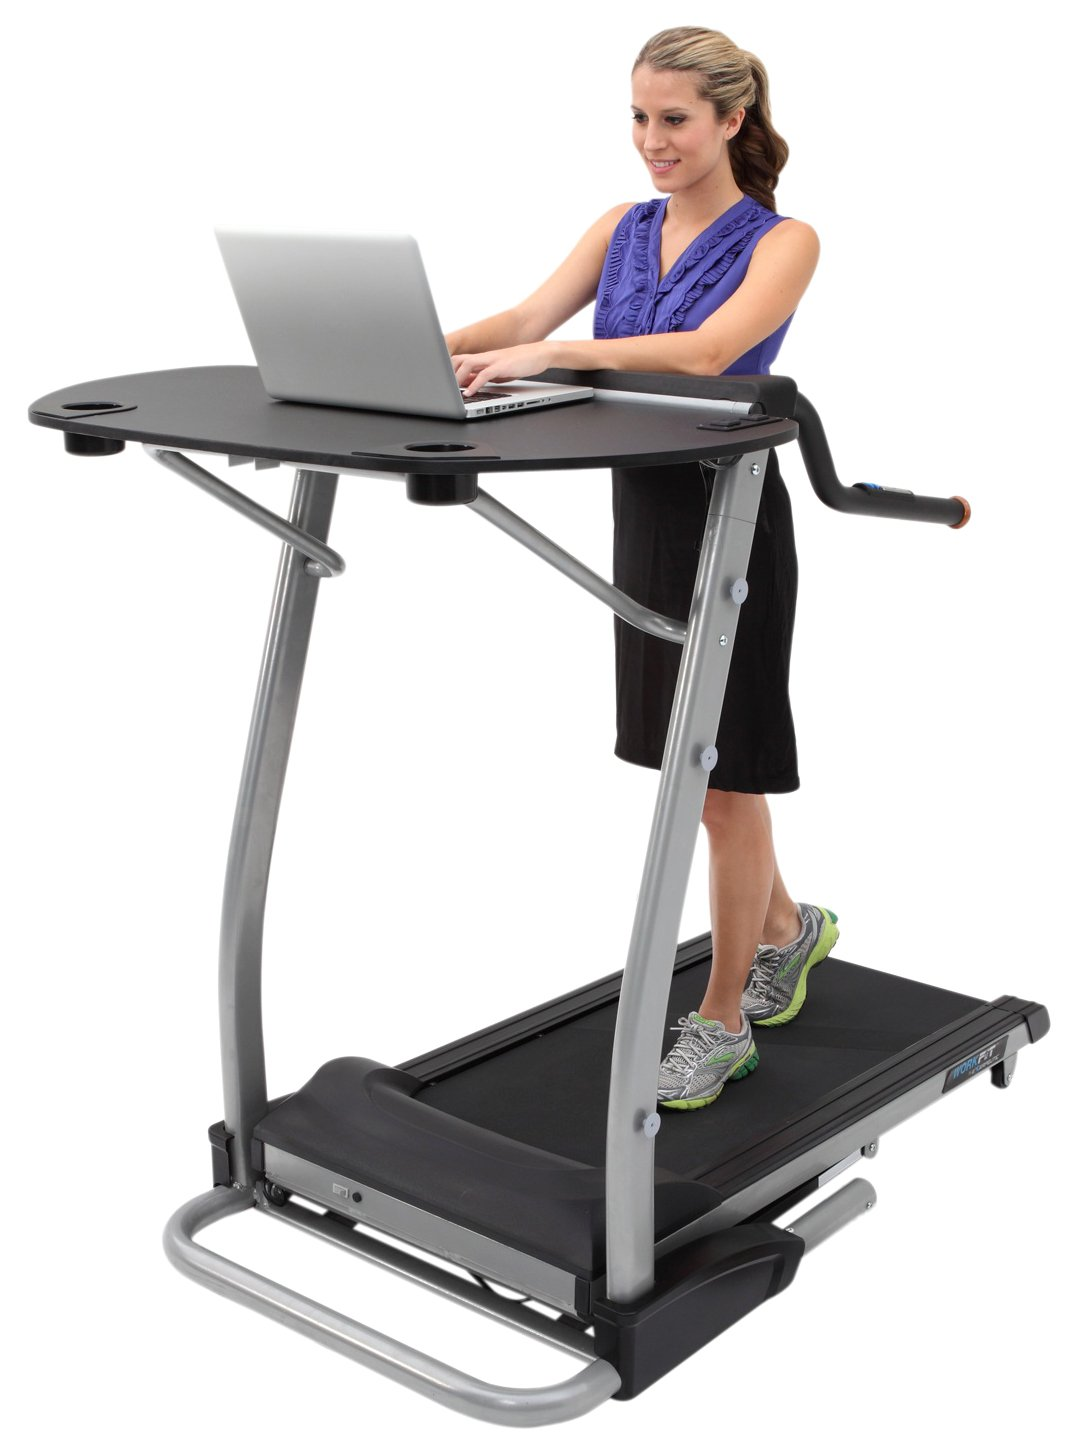 Exerpeutic 2000 WorkFit High Capacity Desk Station Treadmill by Exerpeutic